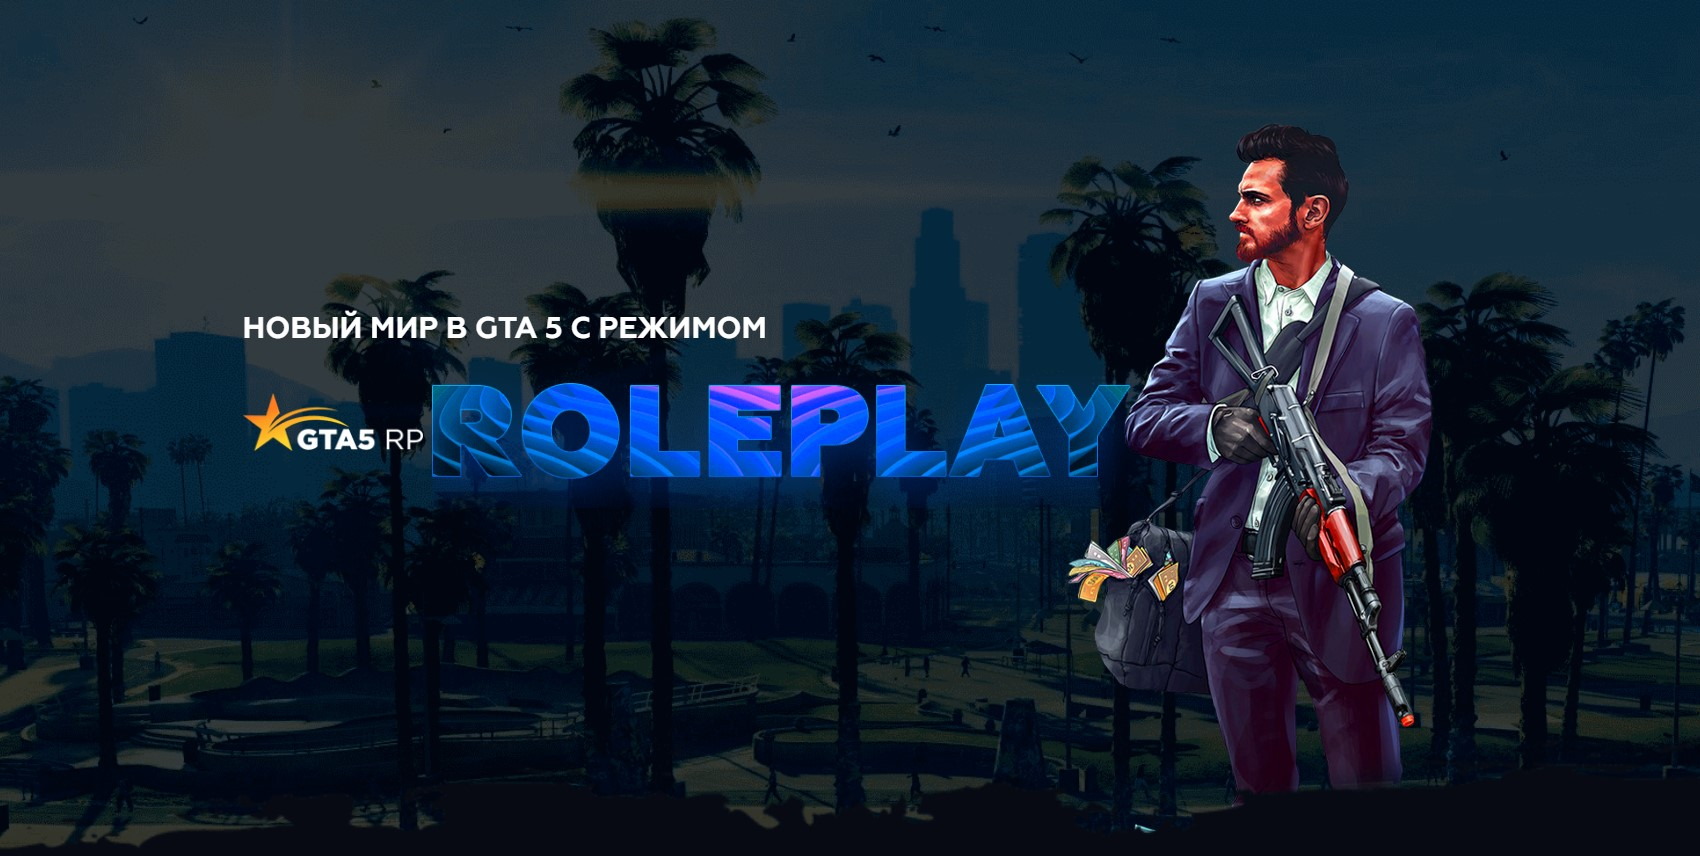 Grand Theft Auto 5 - Role Play